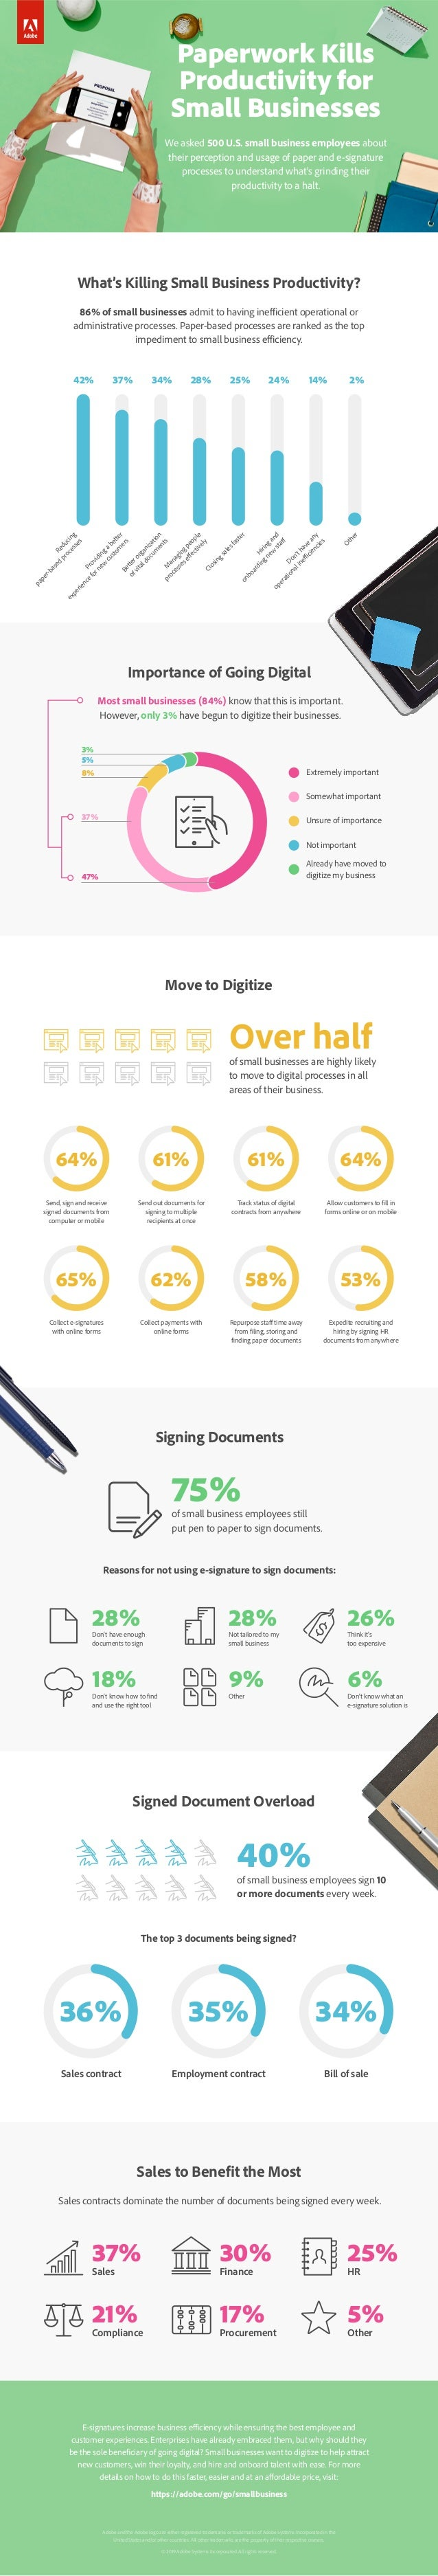 28%Don't have enough documents to sign 28%Not tailored to my small business 18%Don't know how to find and use the right to...